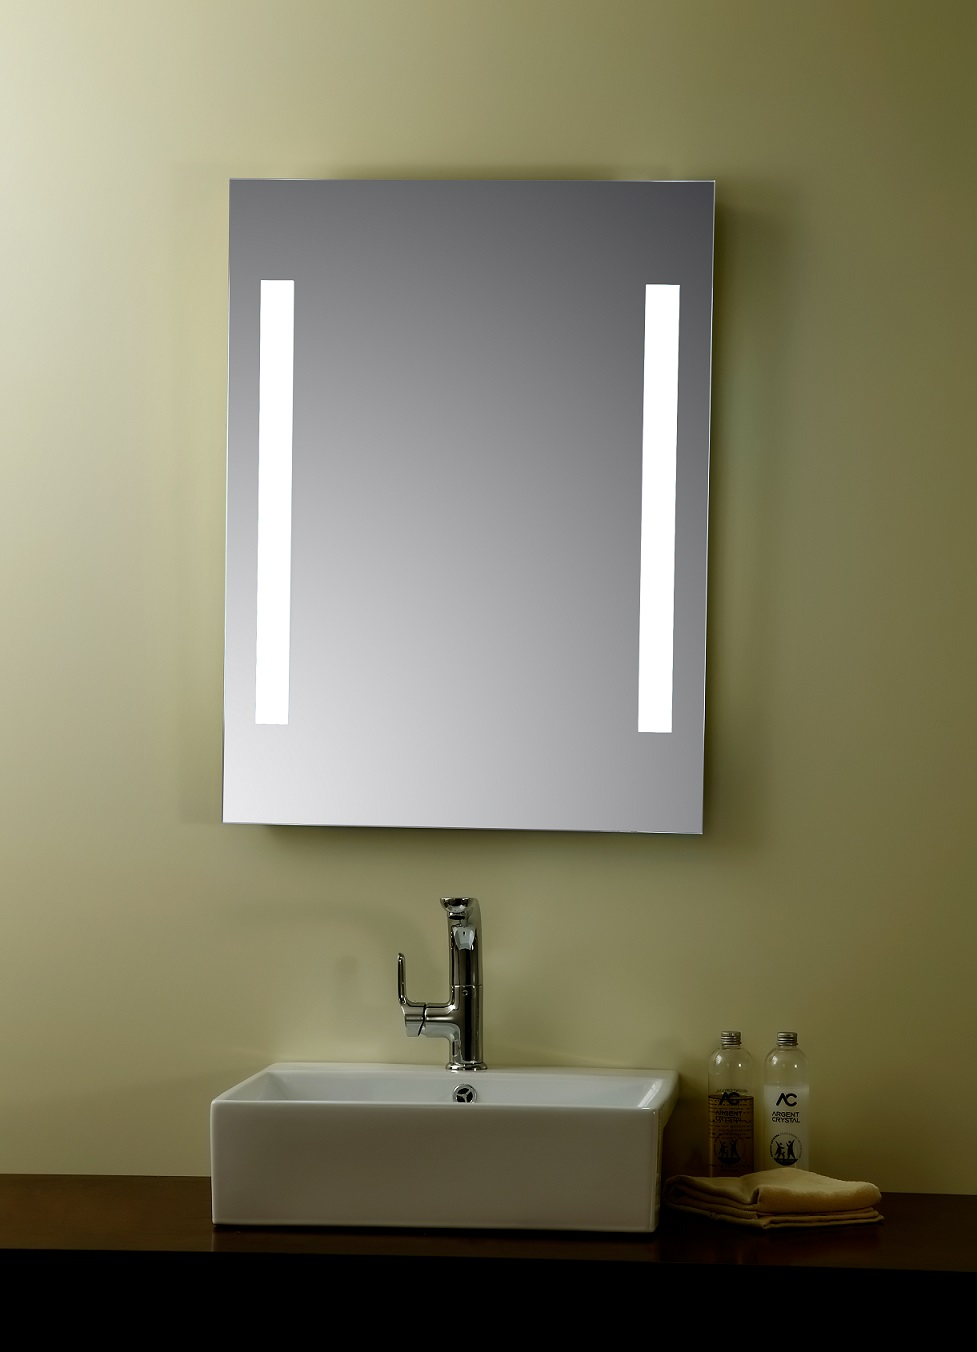 Livorno Lighted Vanity Mirror LED Bathroom Mirror Vertical 19.7 x 27.6